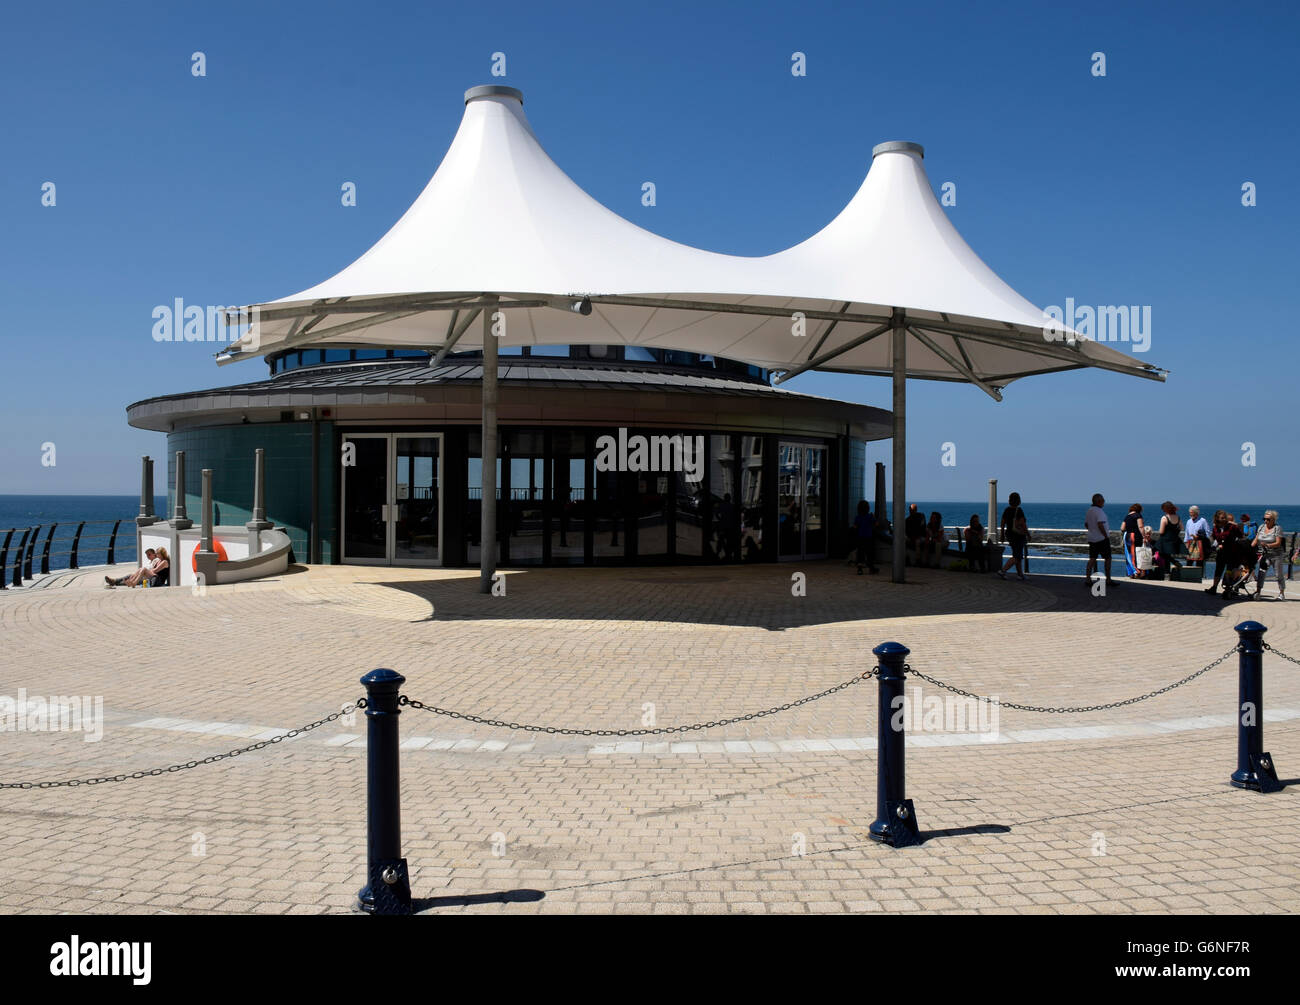 New Bandstand, Aberystwyth seafront promenade, Wales. - Stock Image